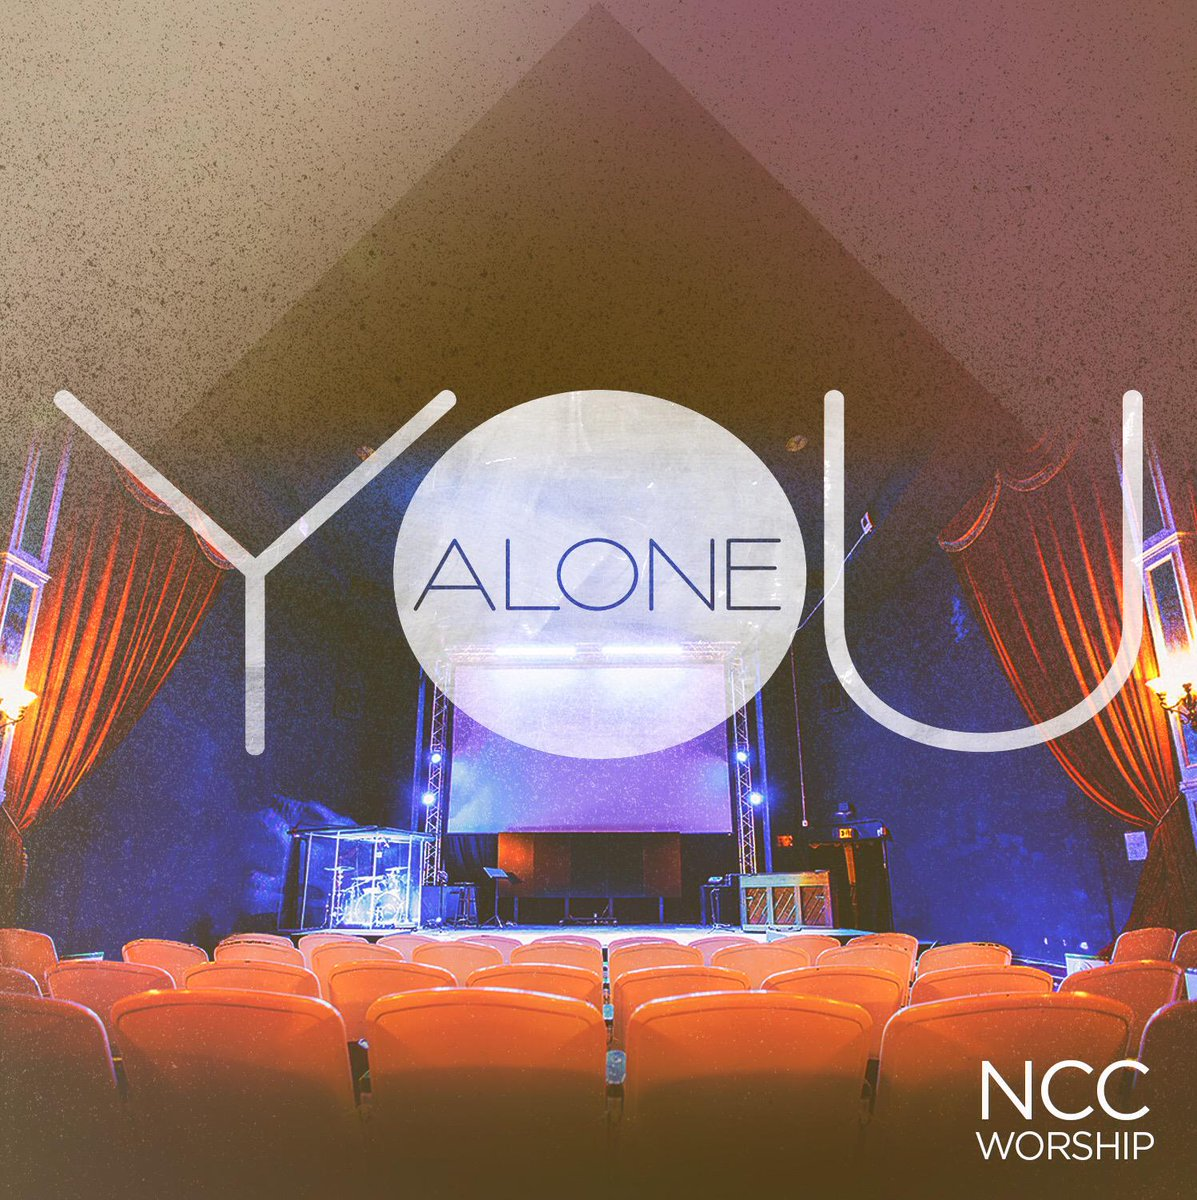 If you're an @NCC leader, why should you come to come to Summit tomorrow? Because you can get #YouAlone a day early. http://t.co/neRJmBvdue